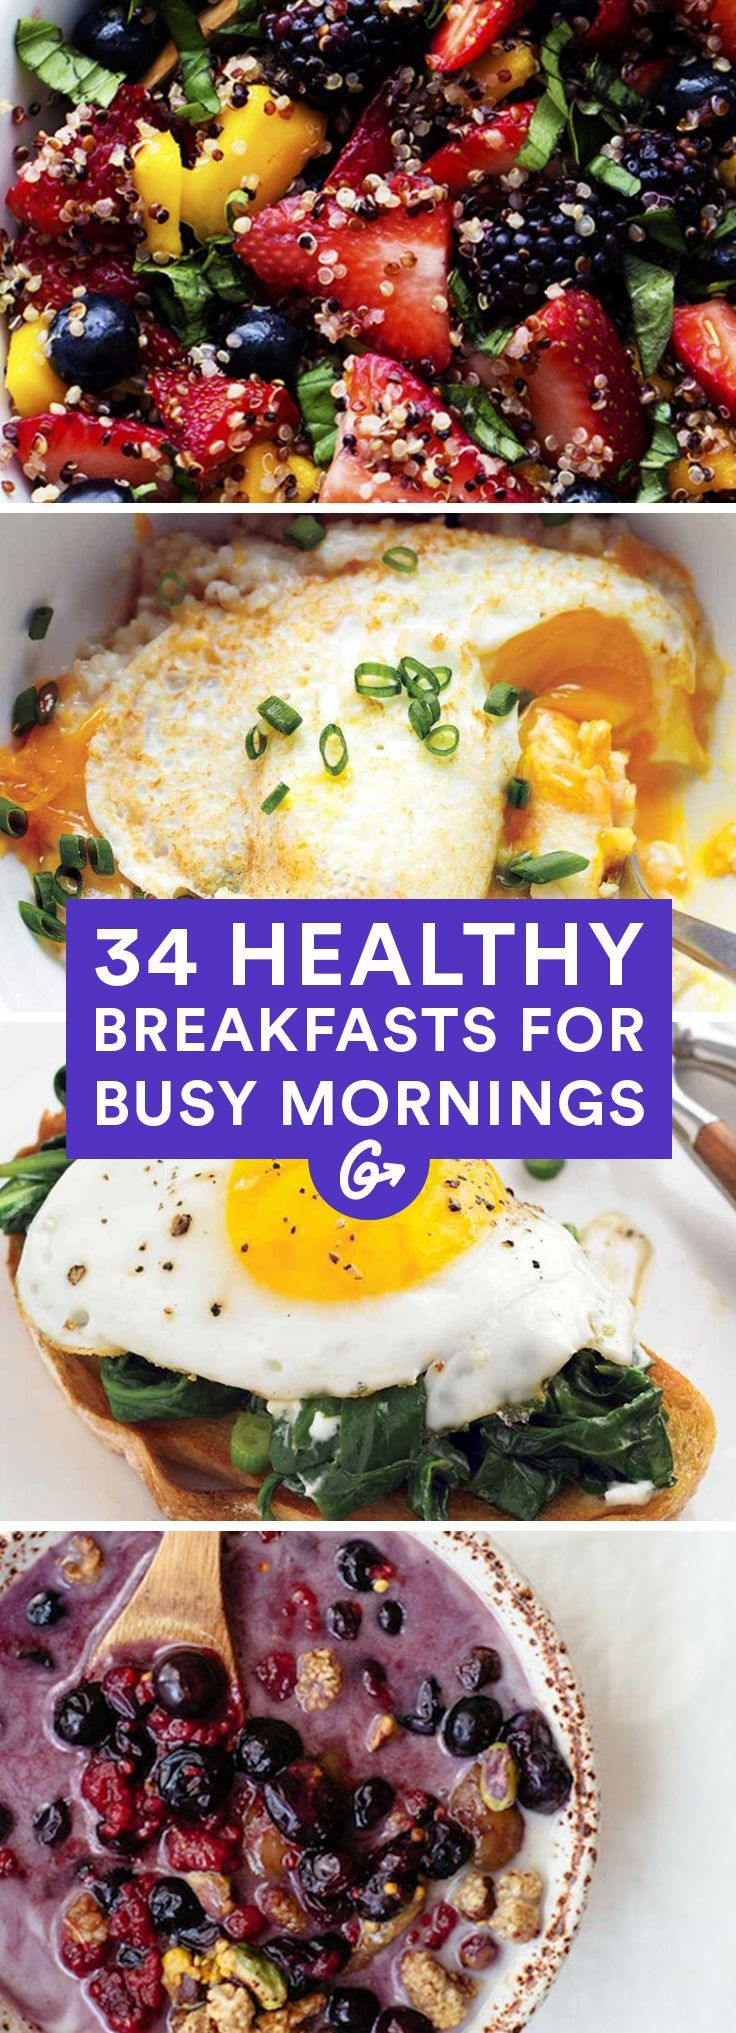 39 Healthy Breakfasts for Busy Mornings We, The o'jays